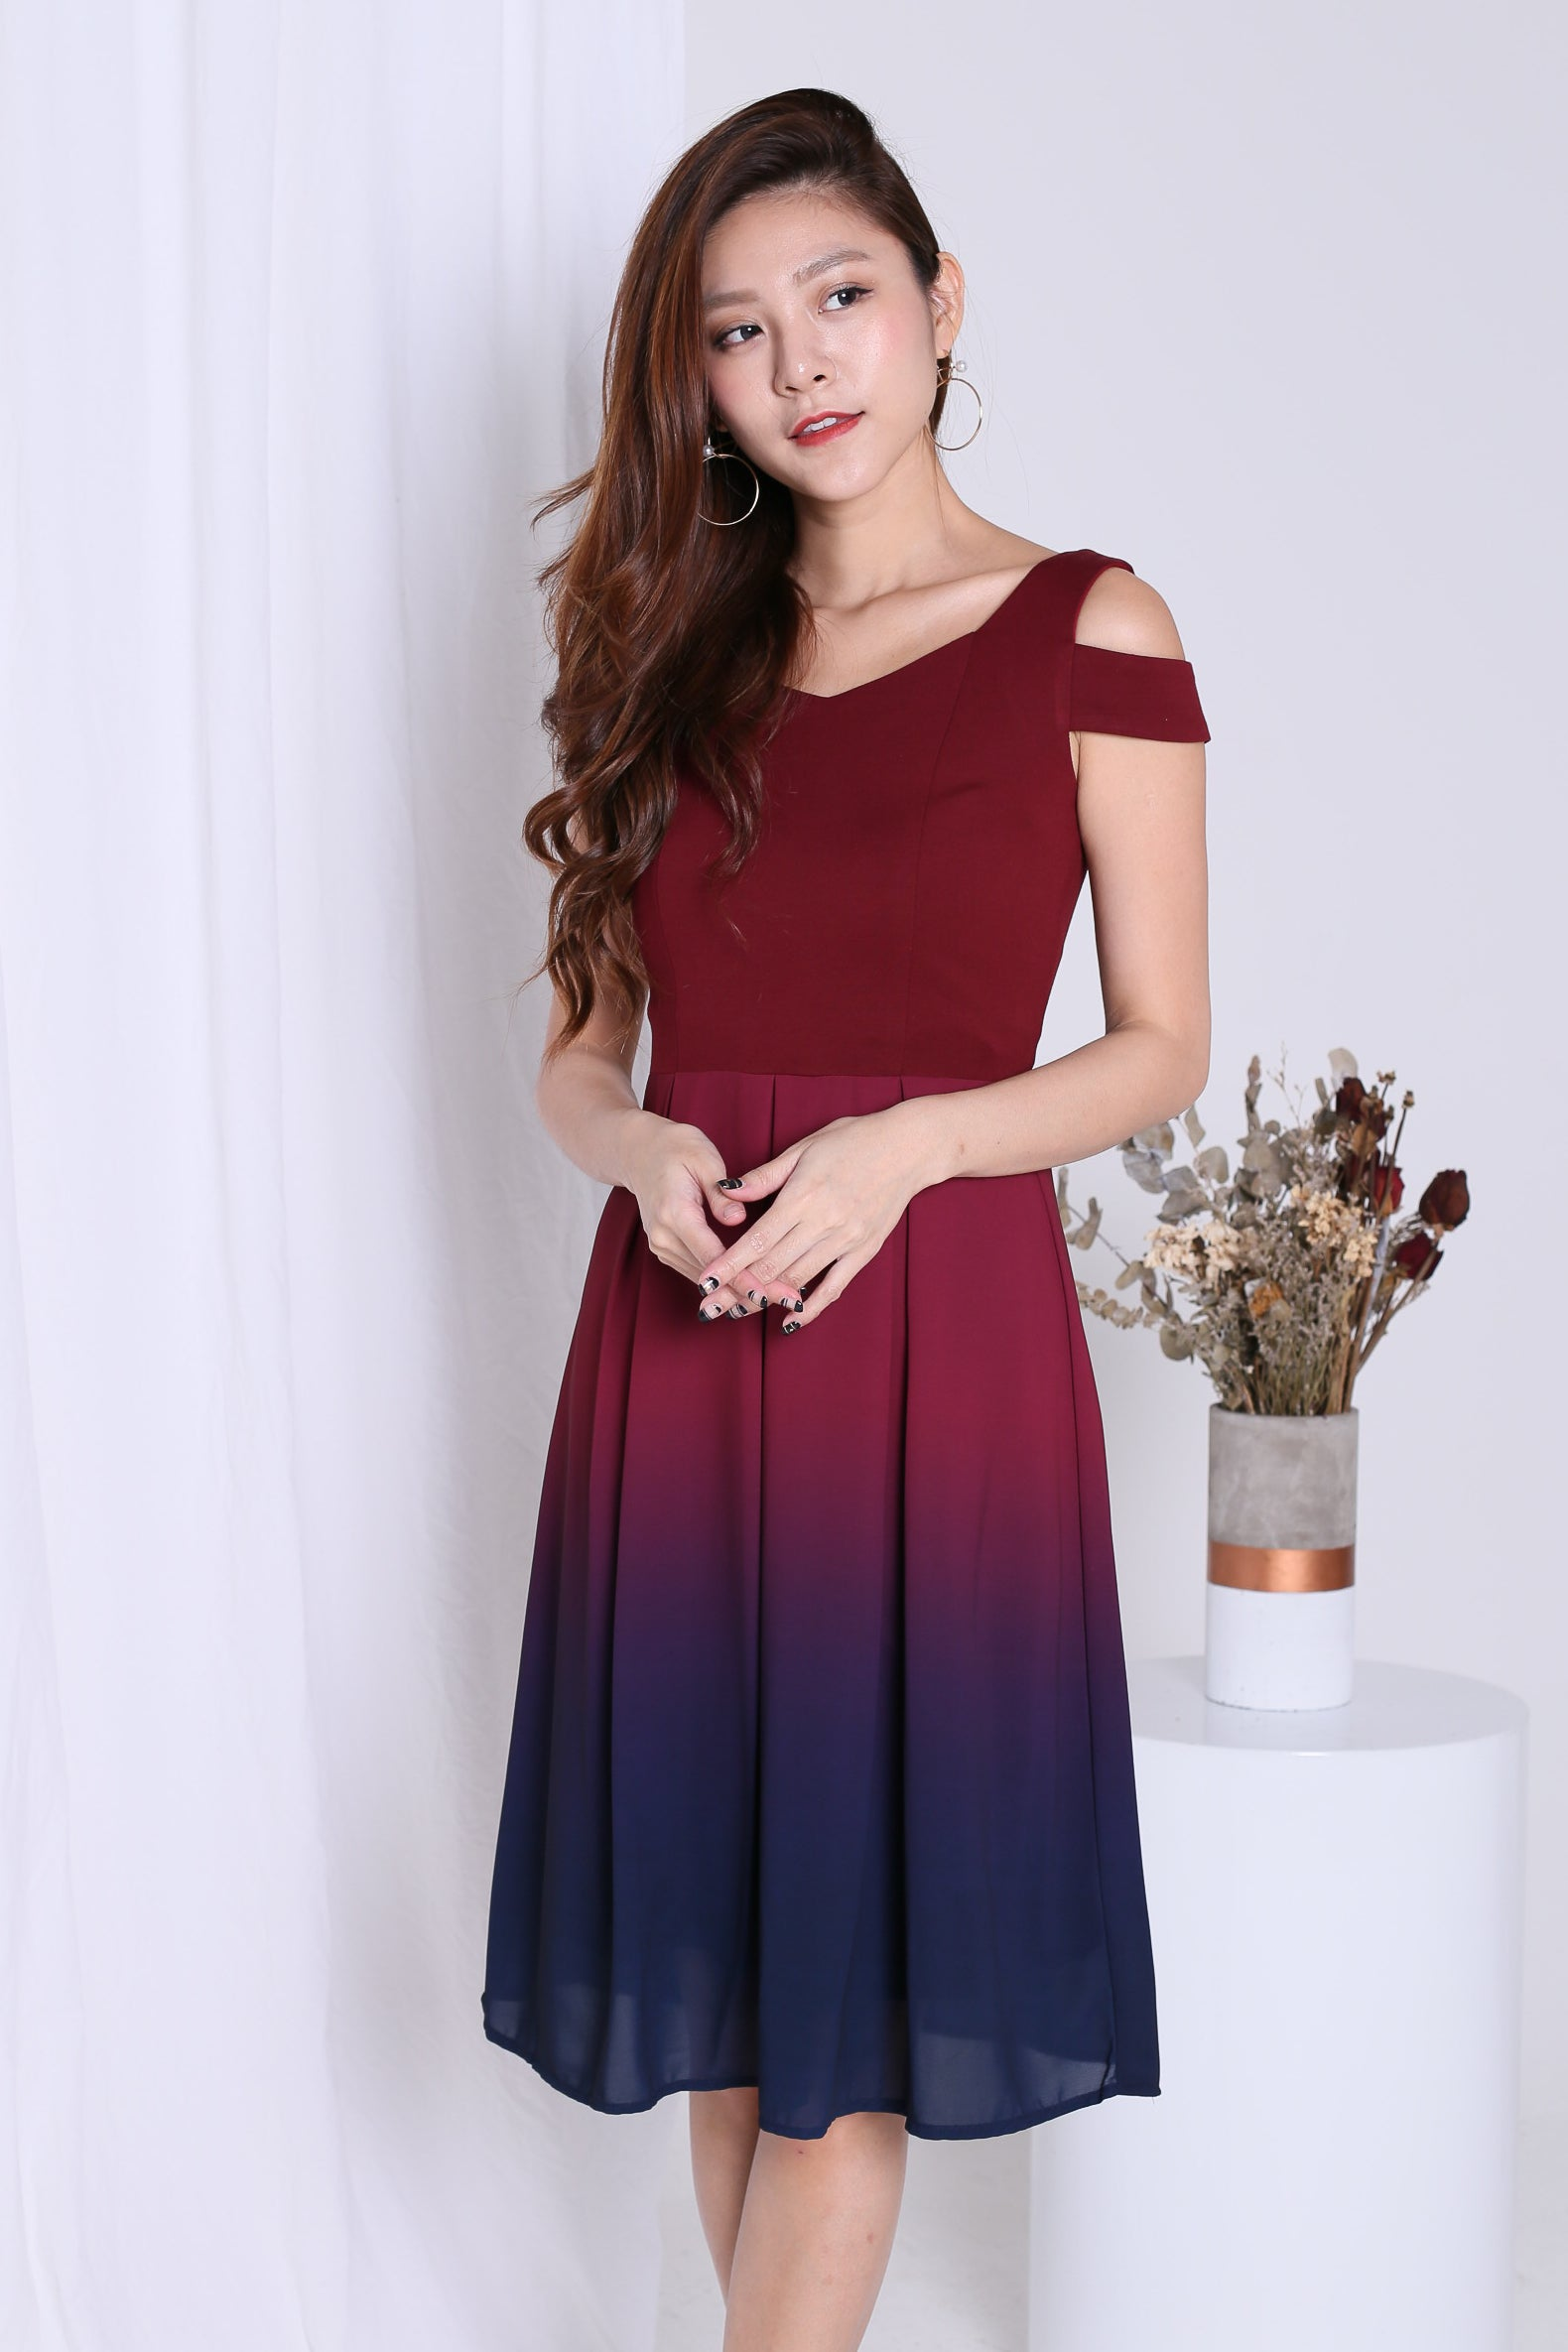 ed97f5070276  PREMIUM  ONE LAST DANCE OMBRE COLD SHOULDER DRESS (BURGUNDY-NAVY) –  TOPAZETTE